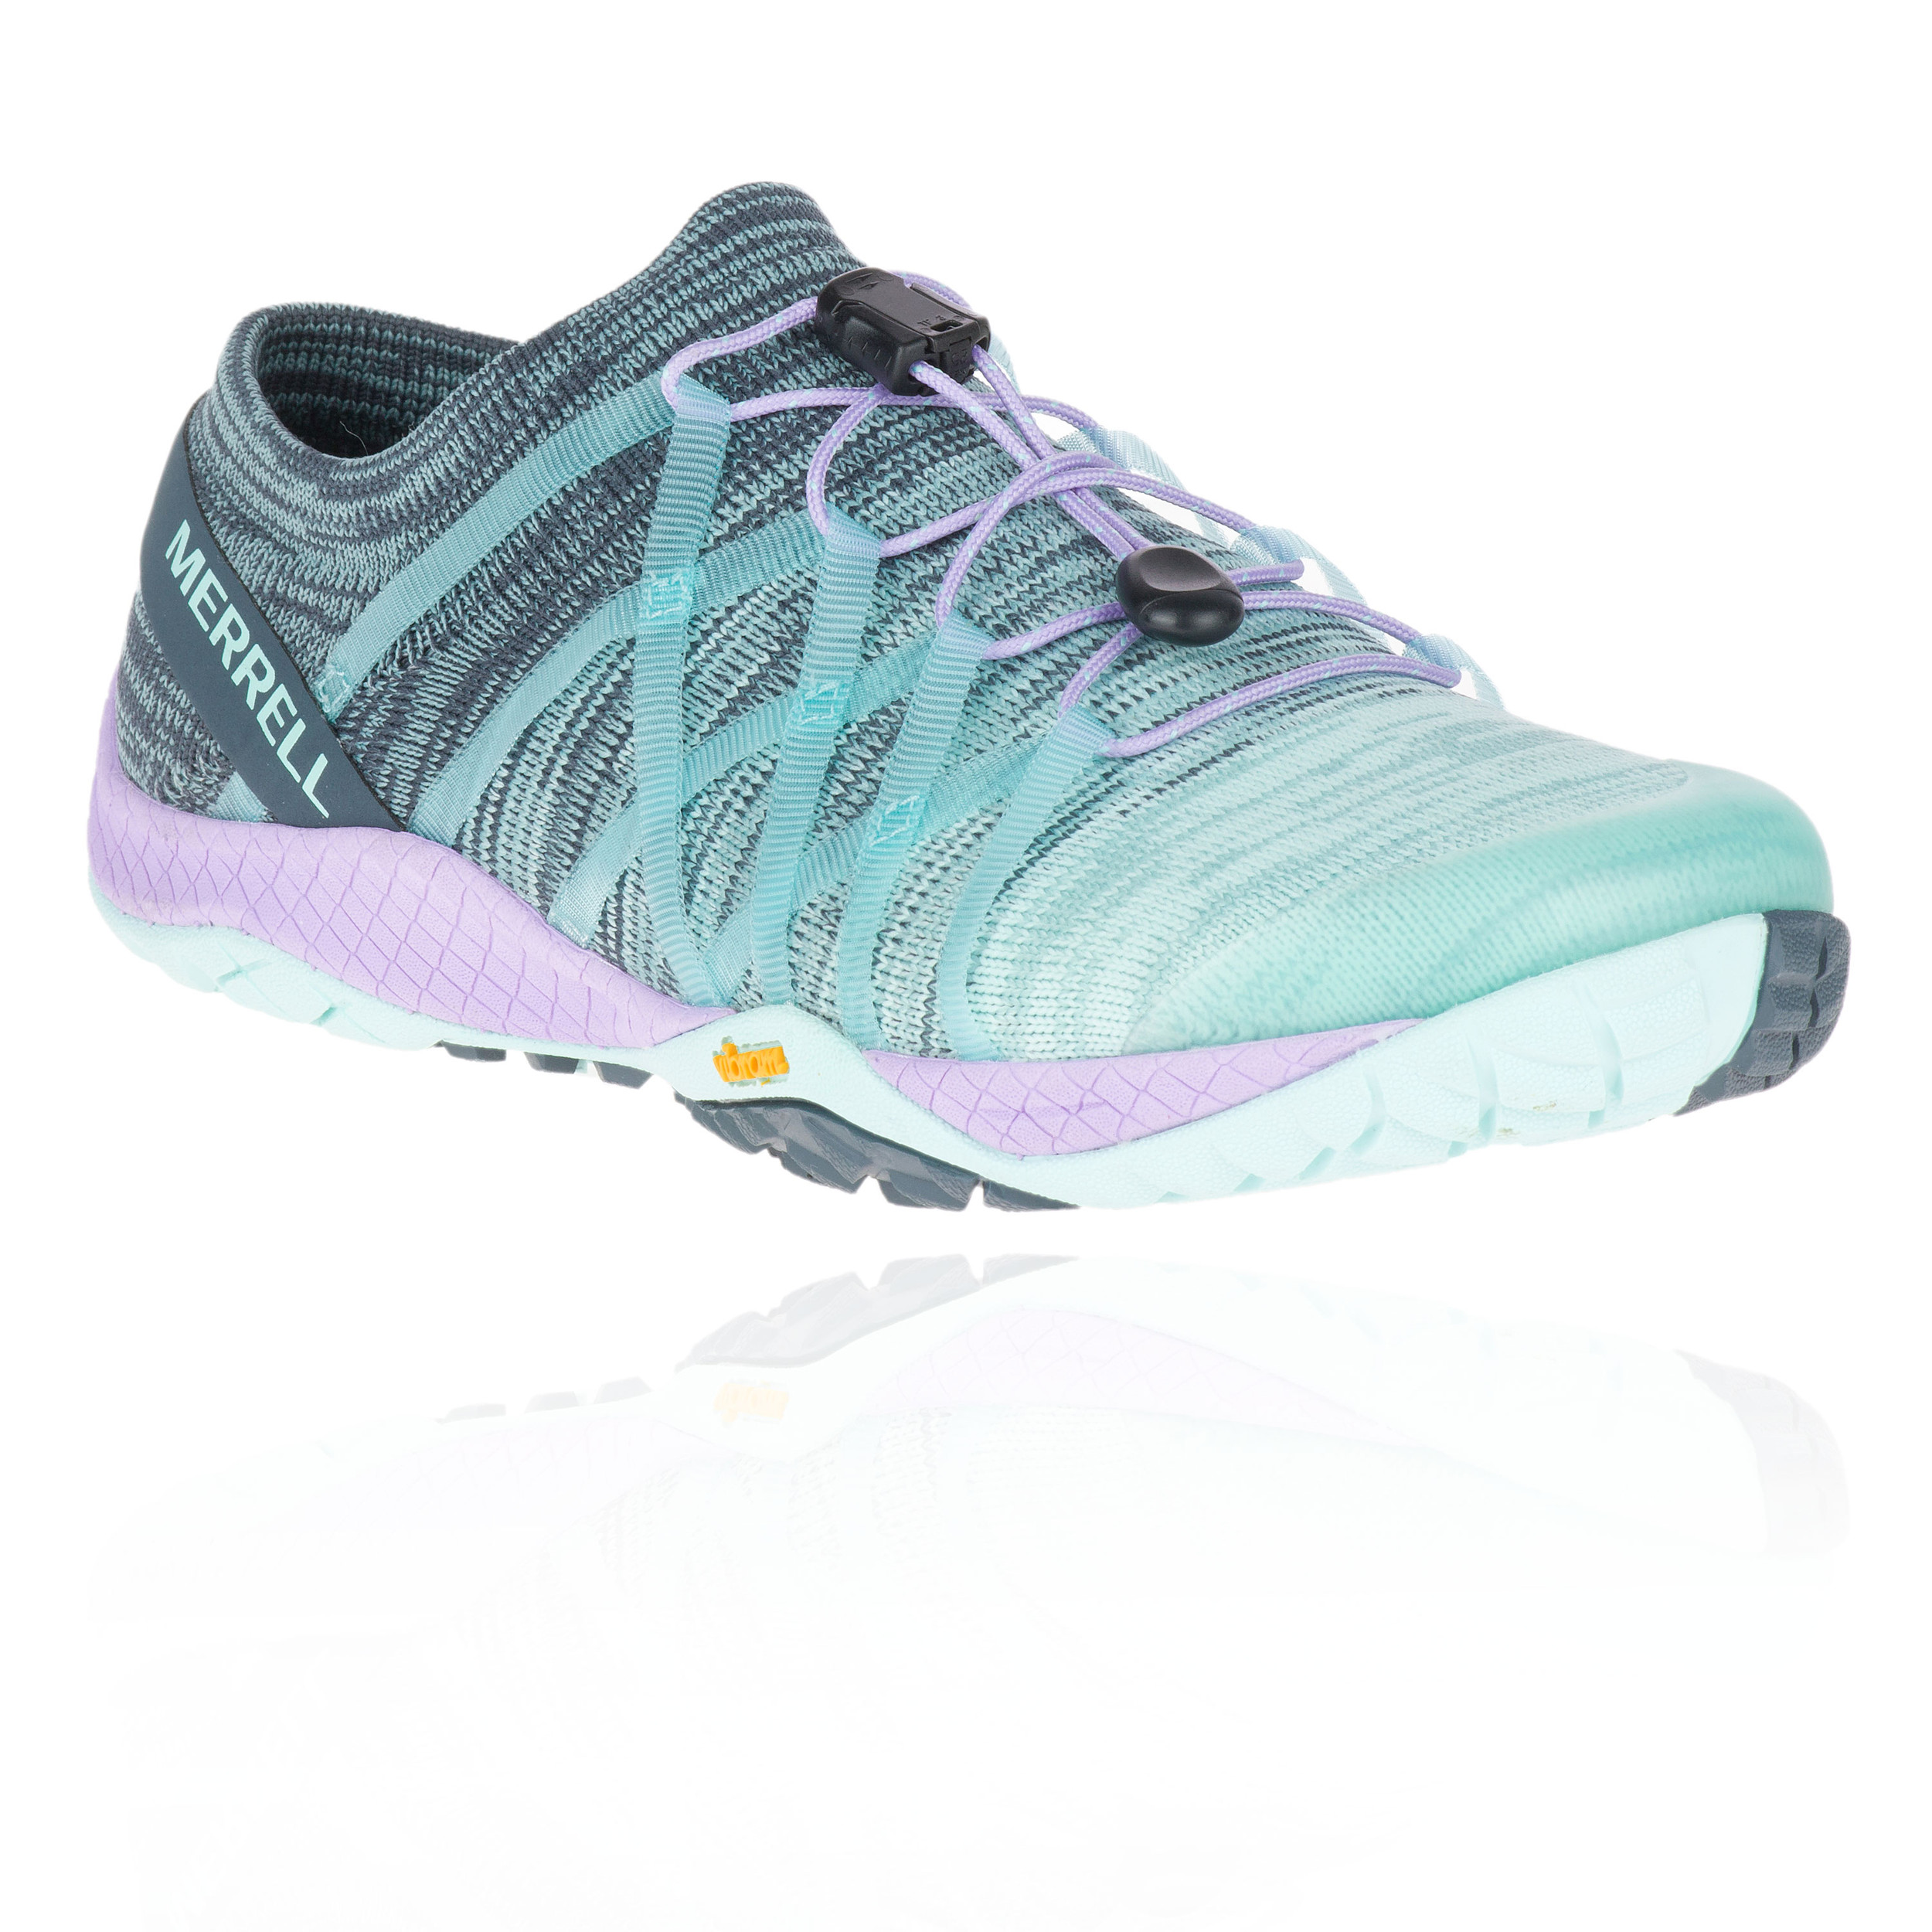 8923063f Details about Merrell Womens Trail Glove 4 Knit Running Shoes Trainers  Sneakers Green Sports